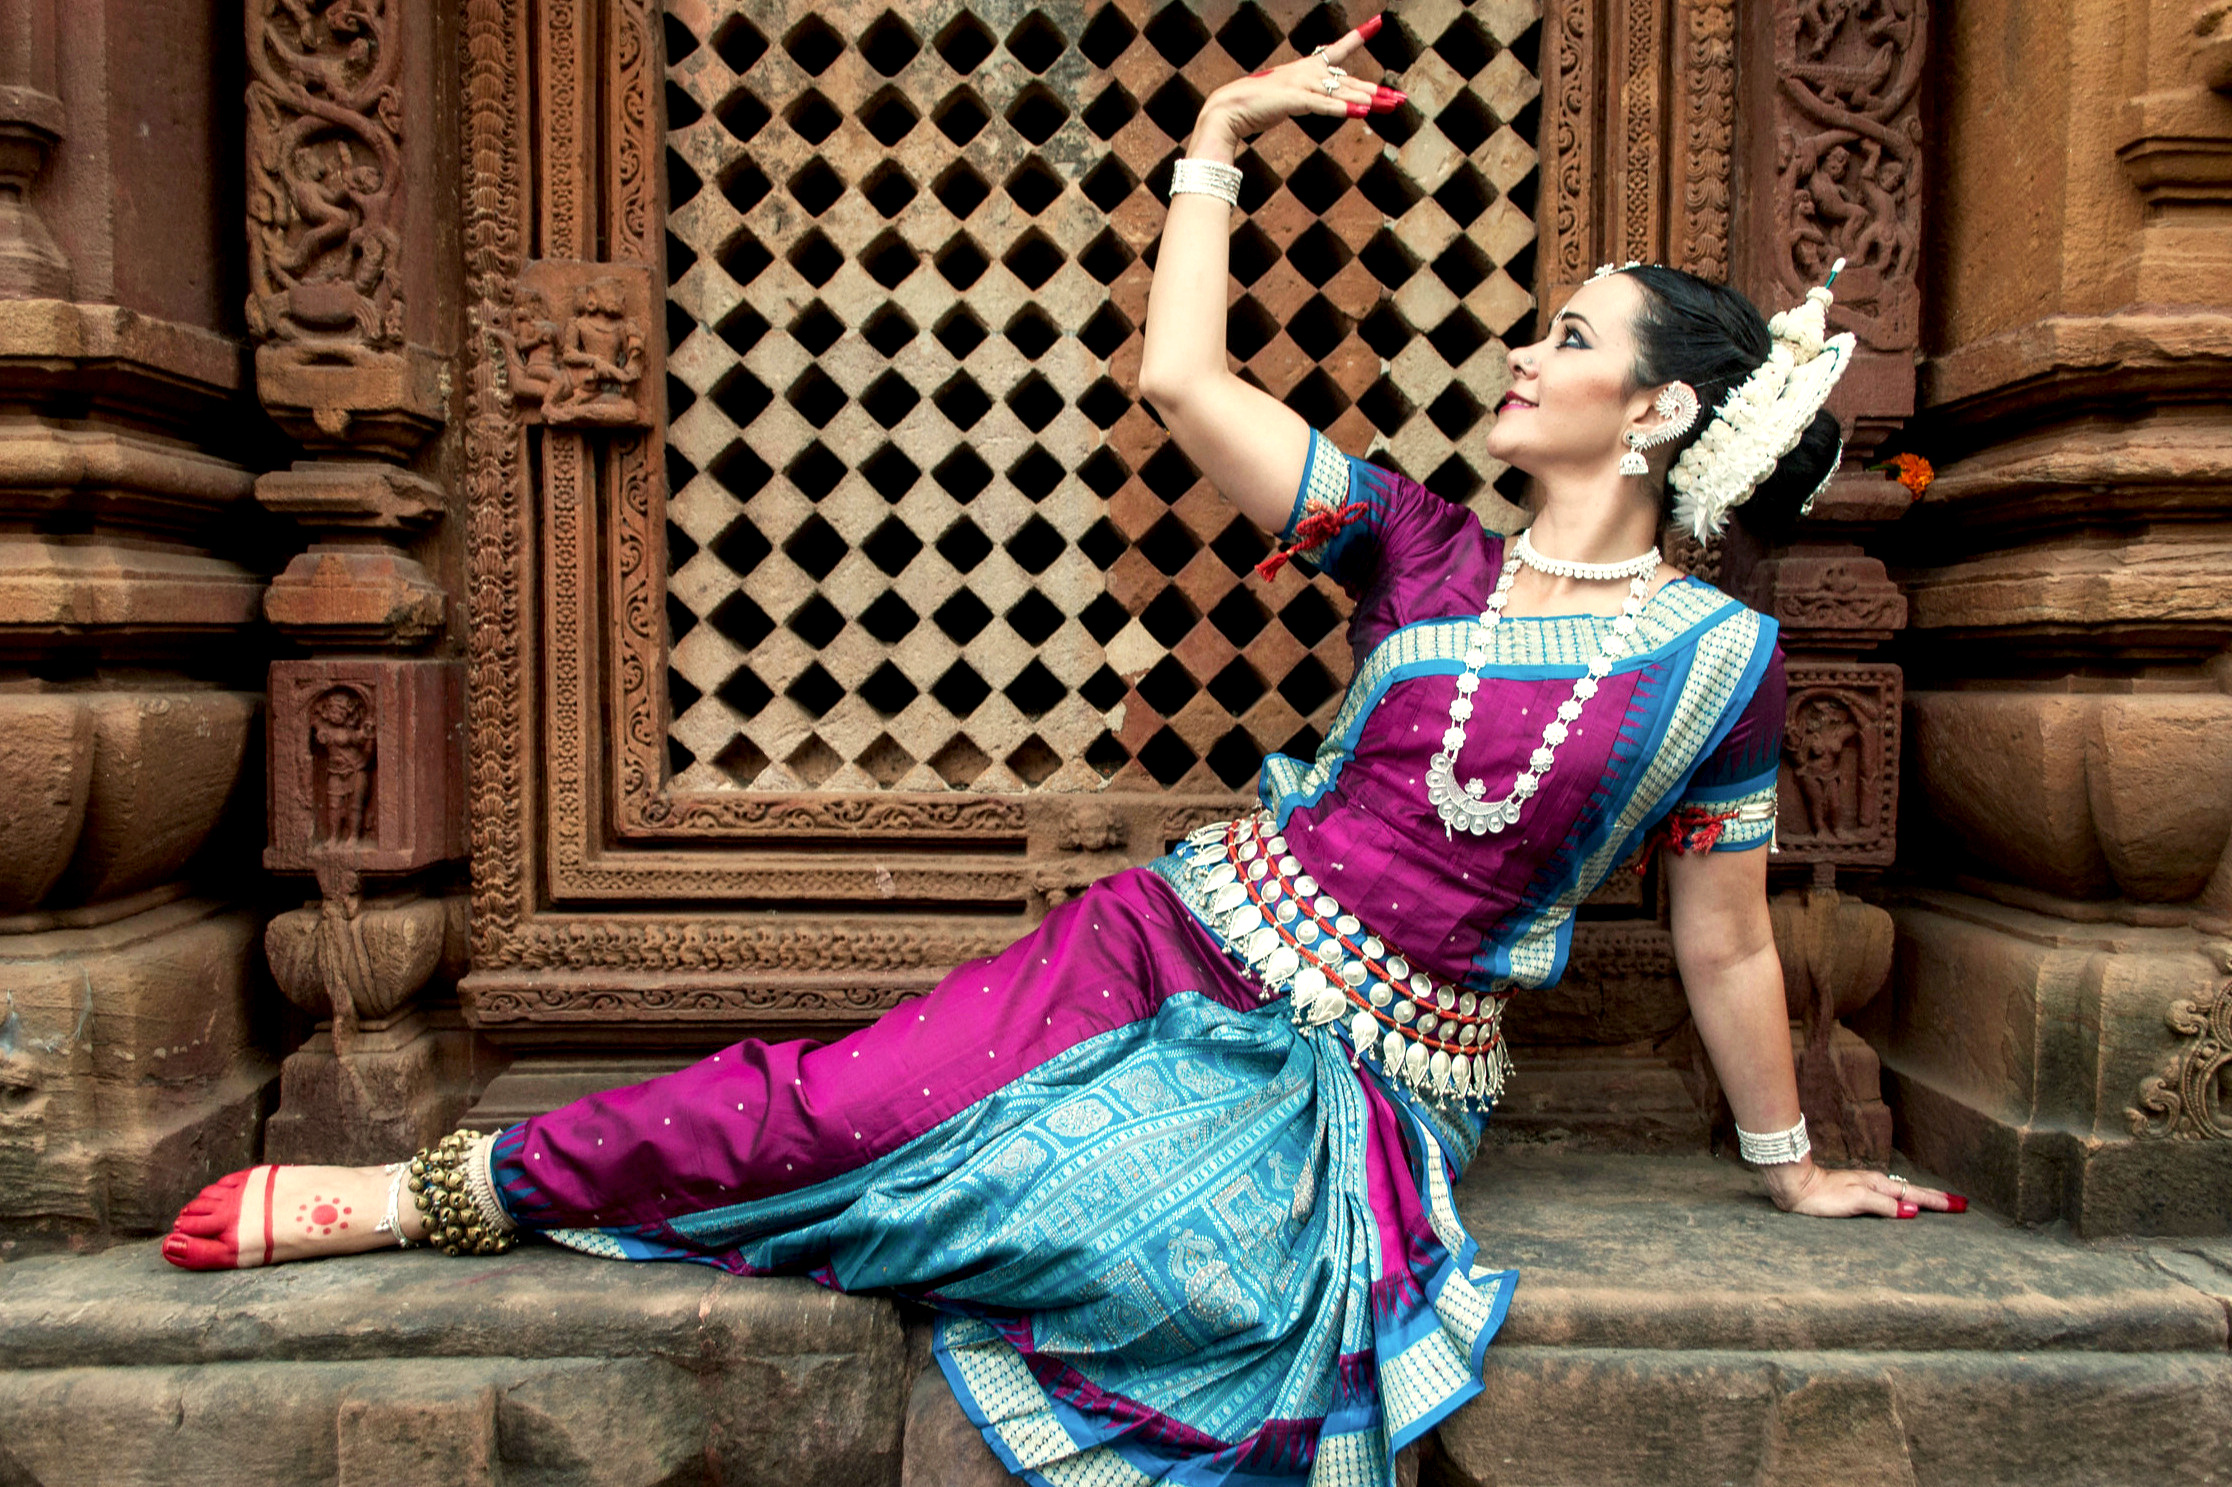 Namaste, my name is Tara - Welcome to my new website. I hope my journey as a dance artist and my devotion for Indian Performing Arts, will inspire you to follow your heart and live your purpose.